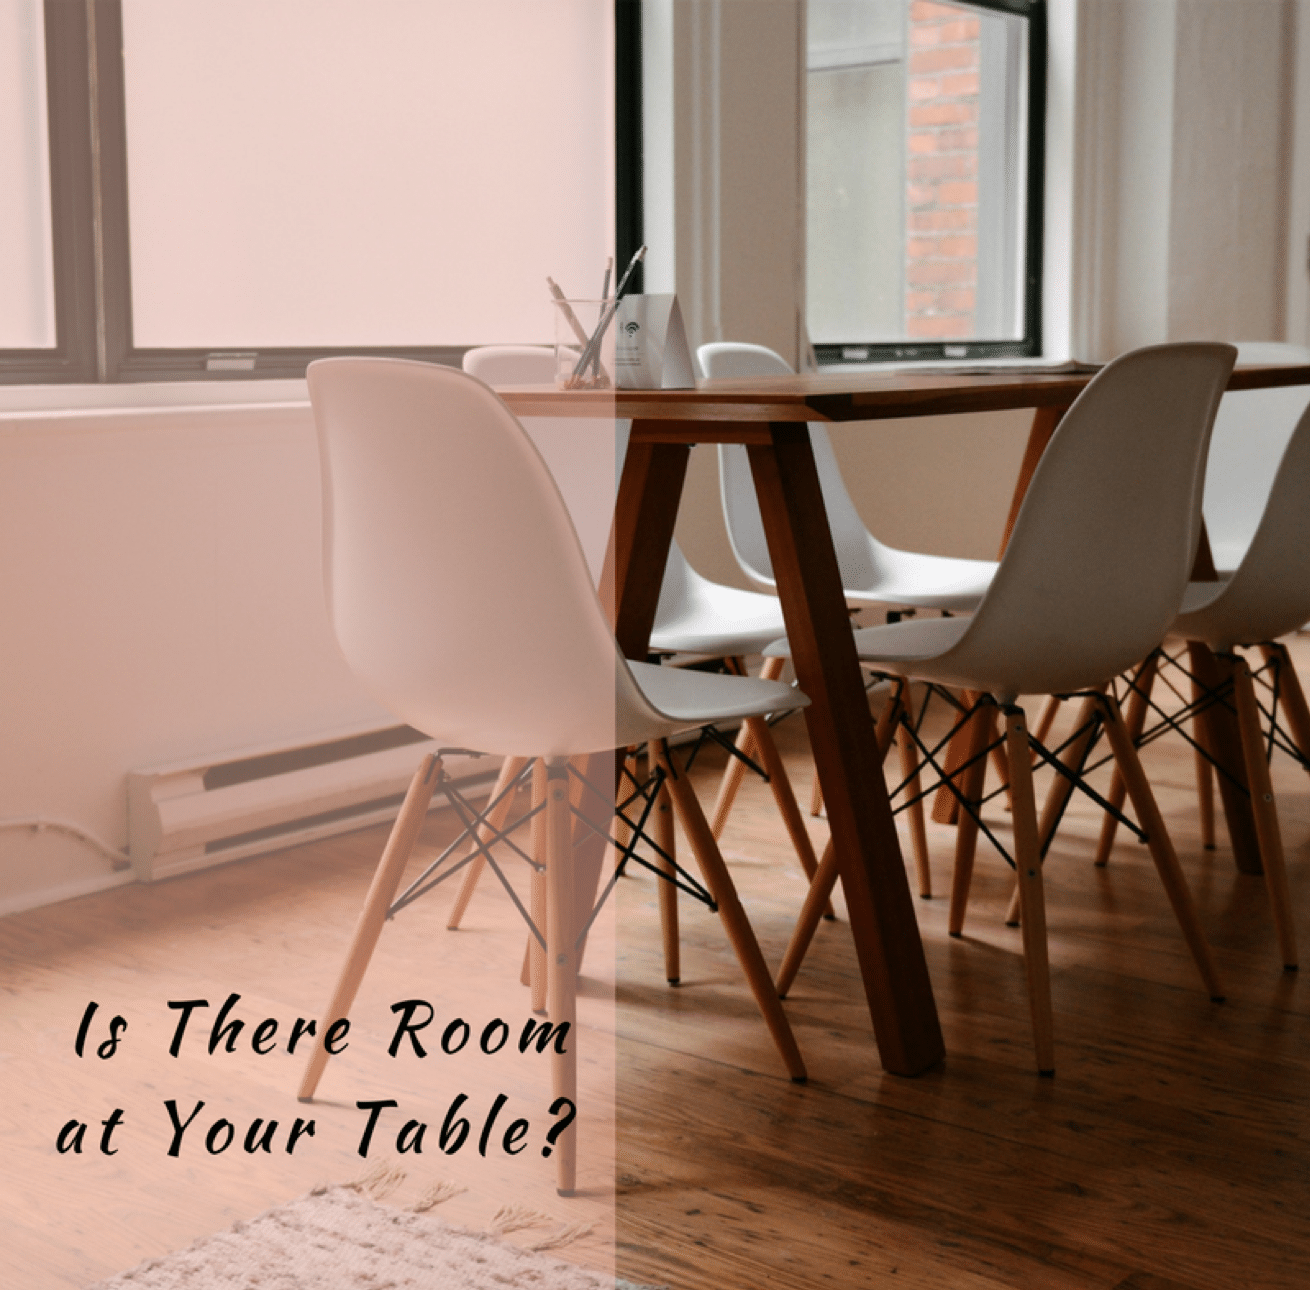 Is There Room At Your Table?